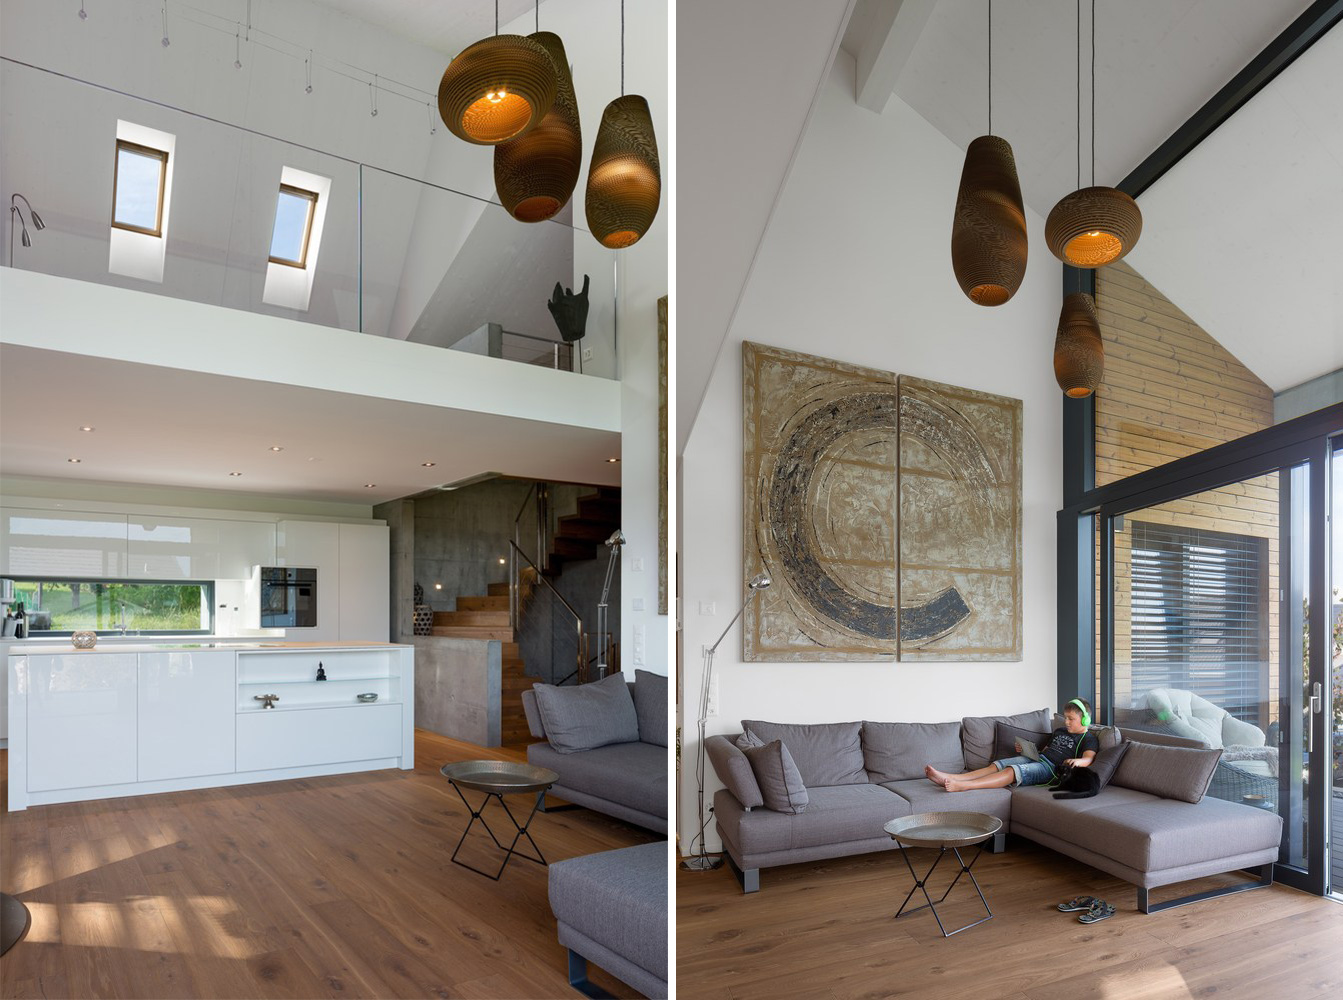 Living space with high ceiling